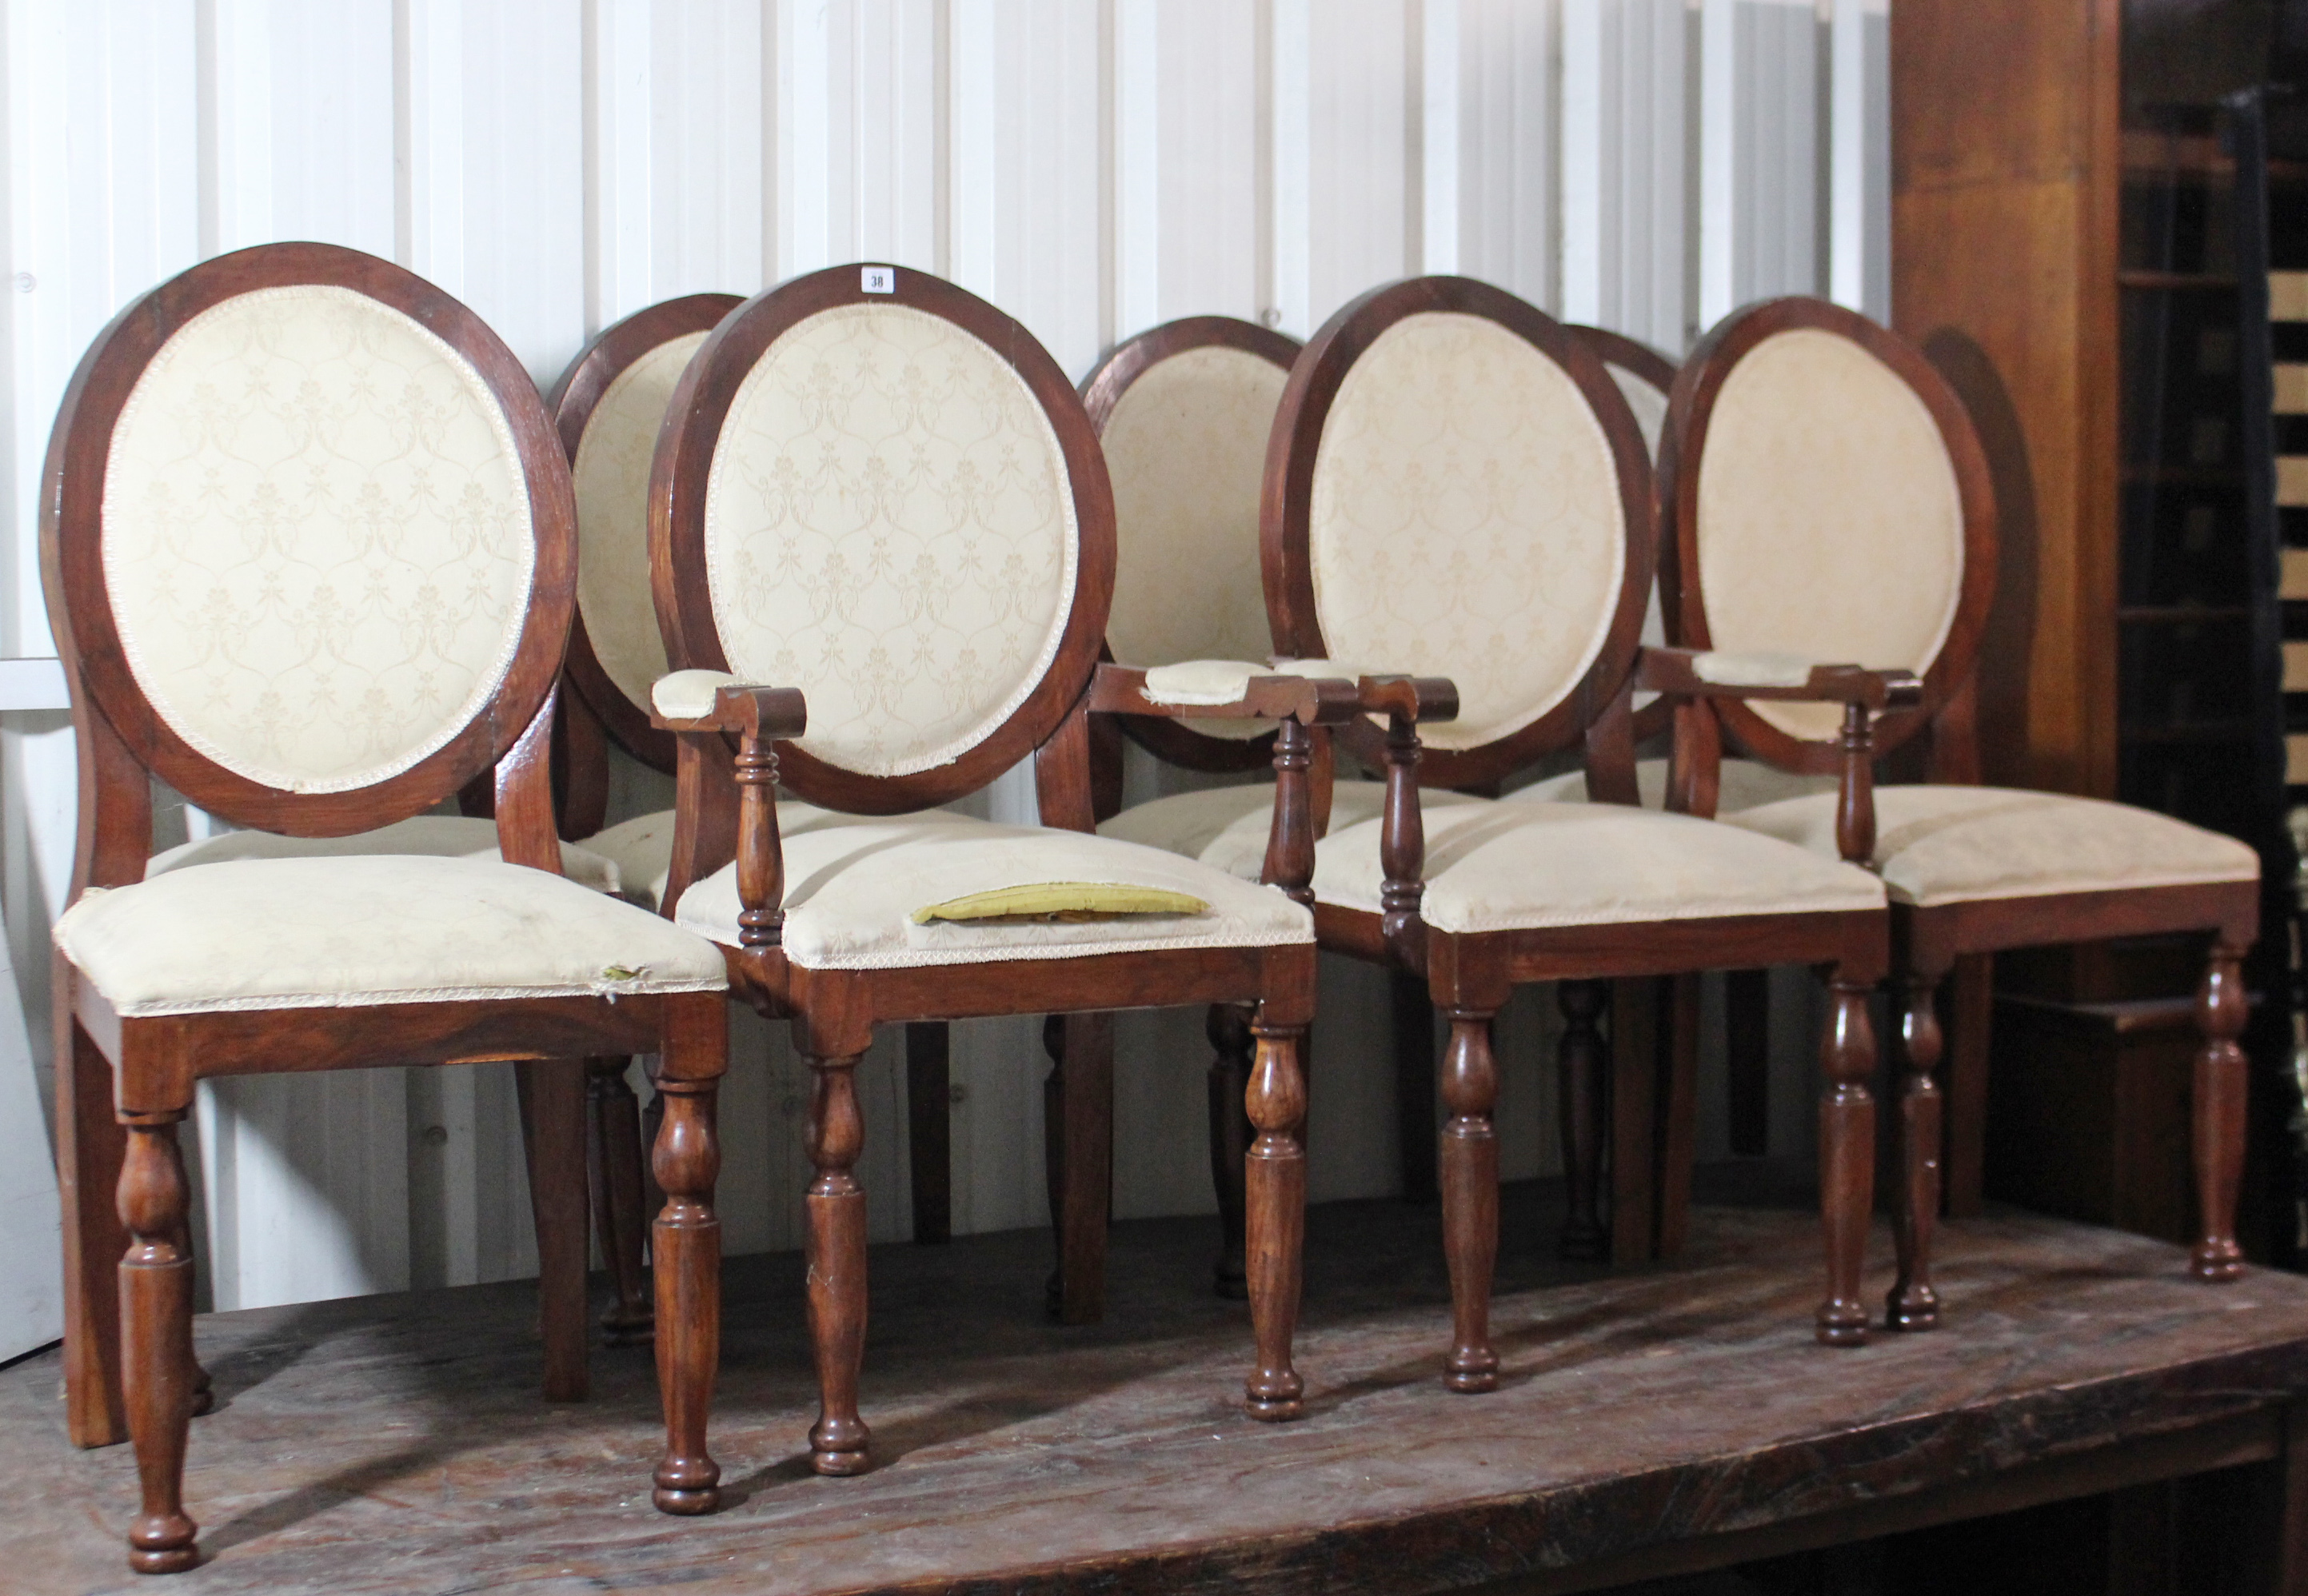 Lot 69 - A set of eight Victorian-style balloon-back dining chairs (including a pair of carvers), with padded